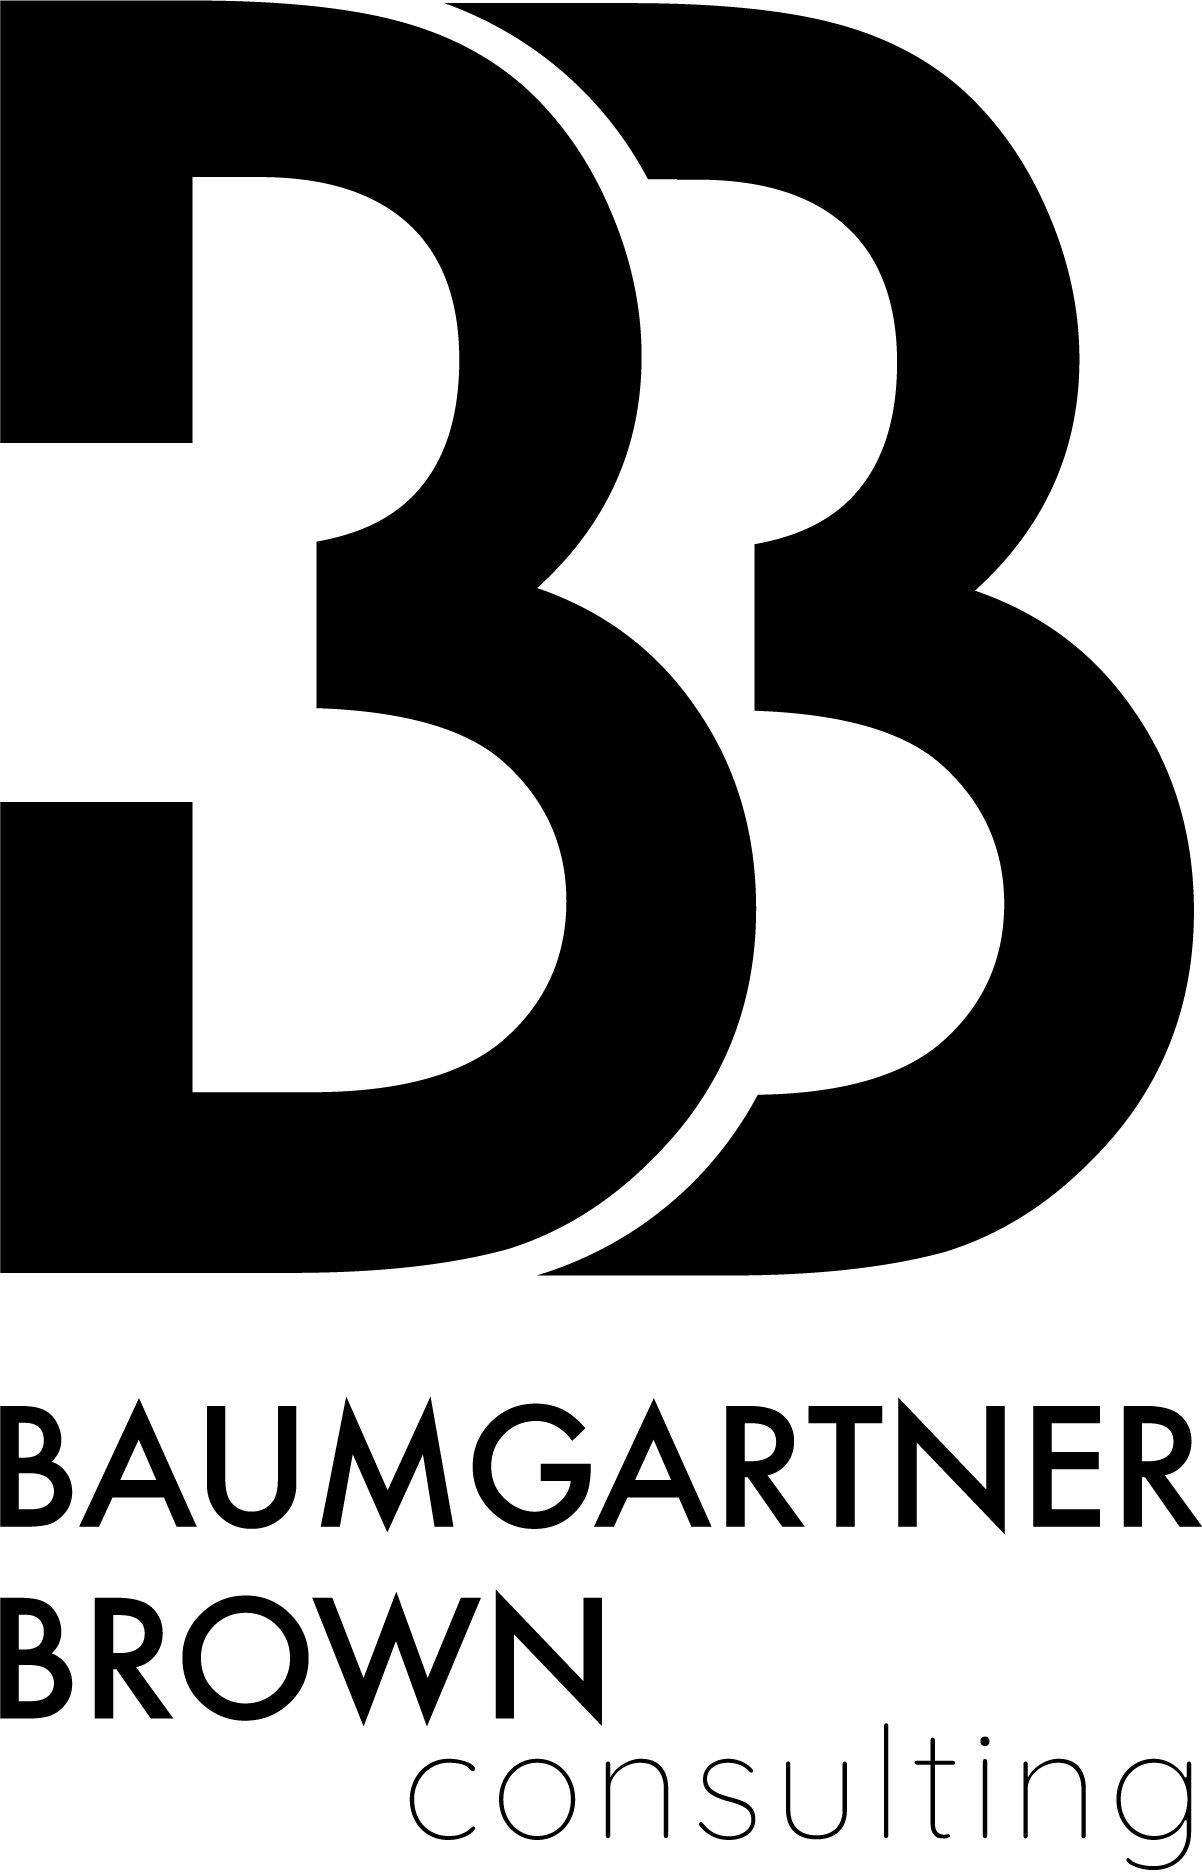 Baumgartner Brown Consulting